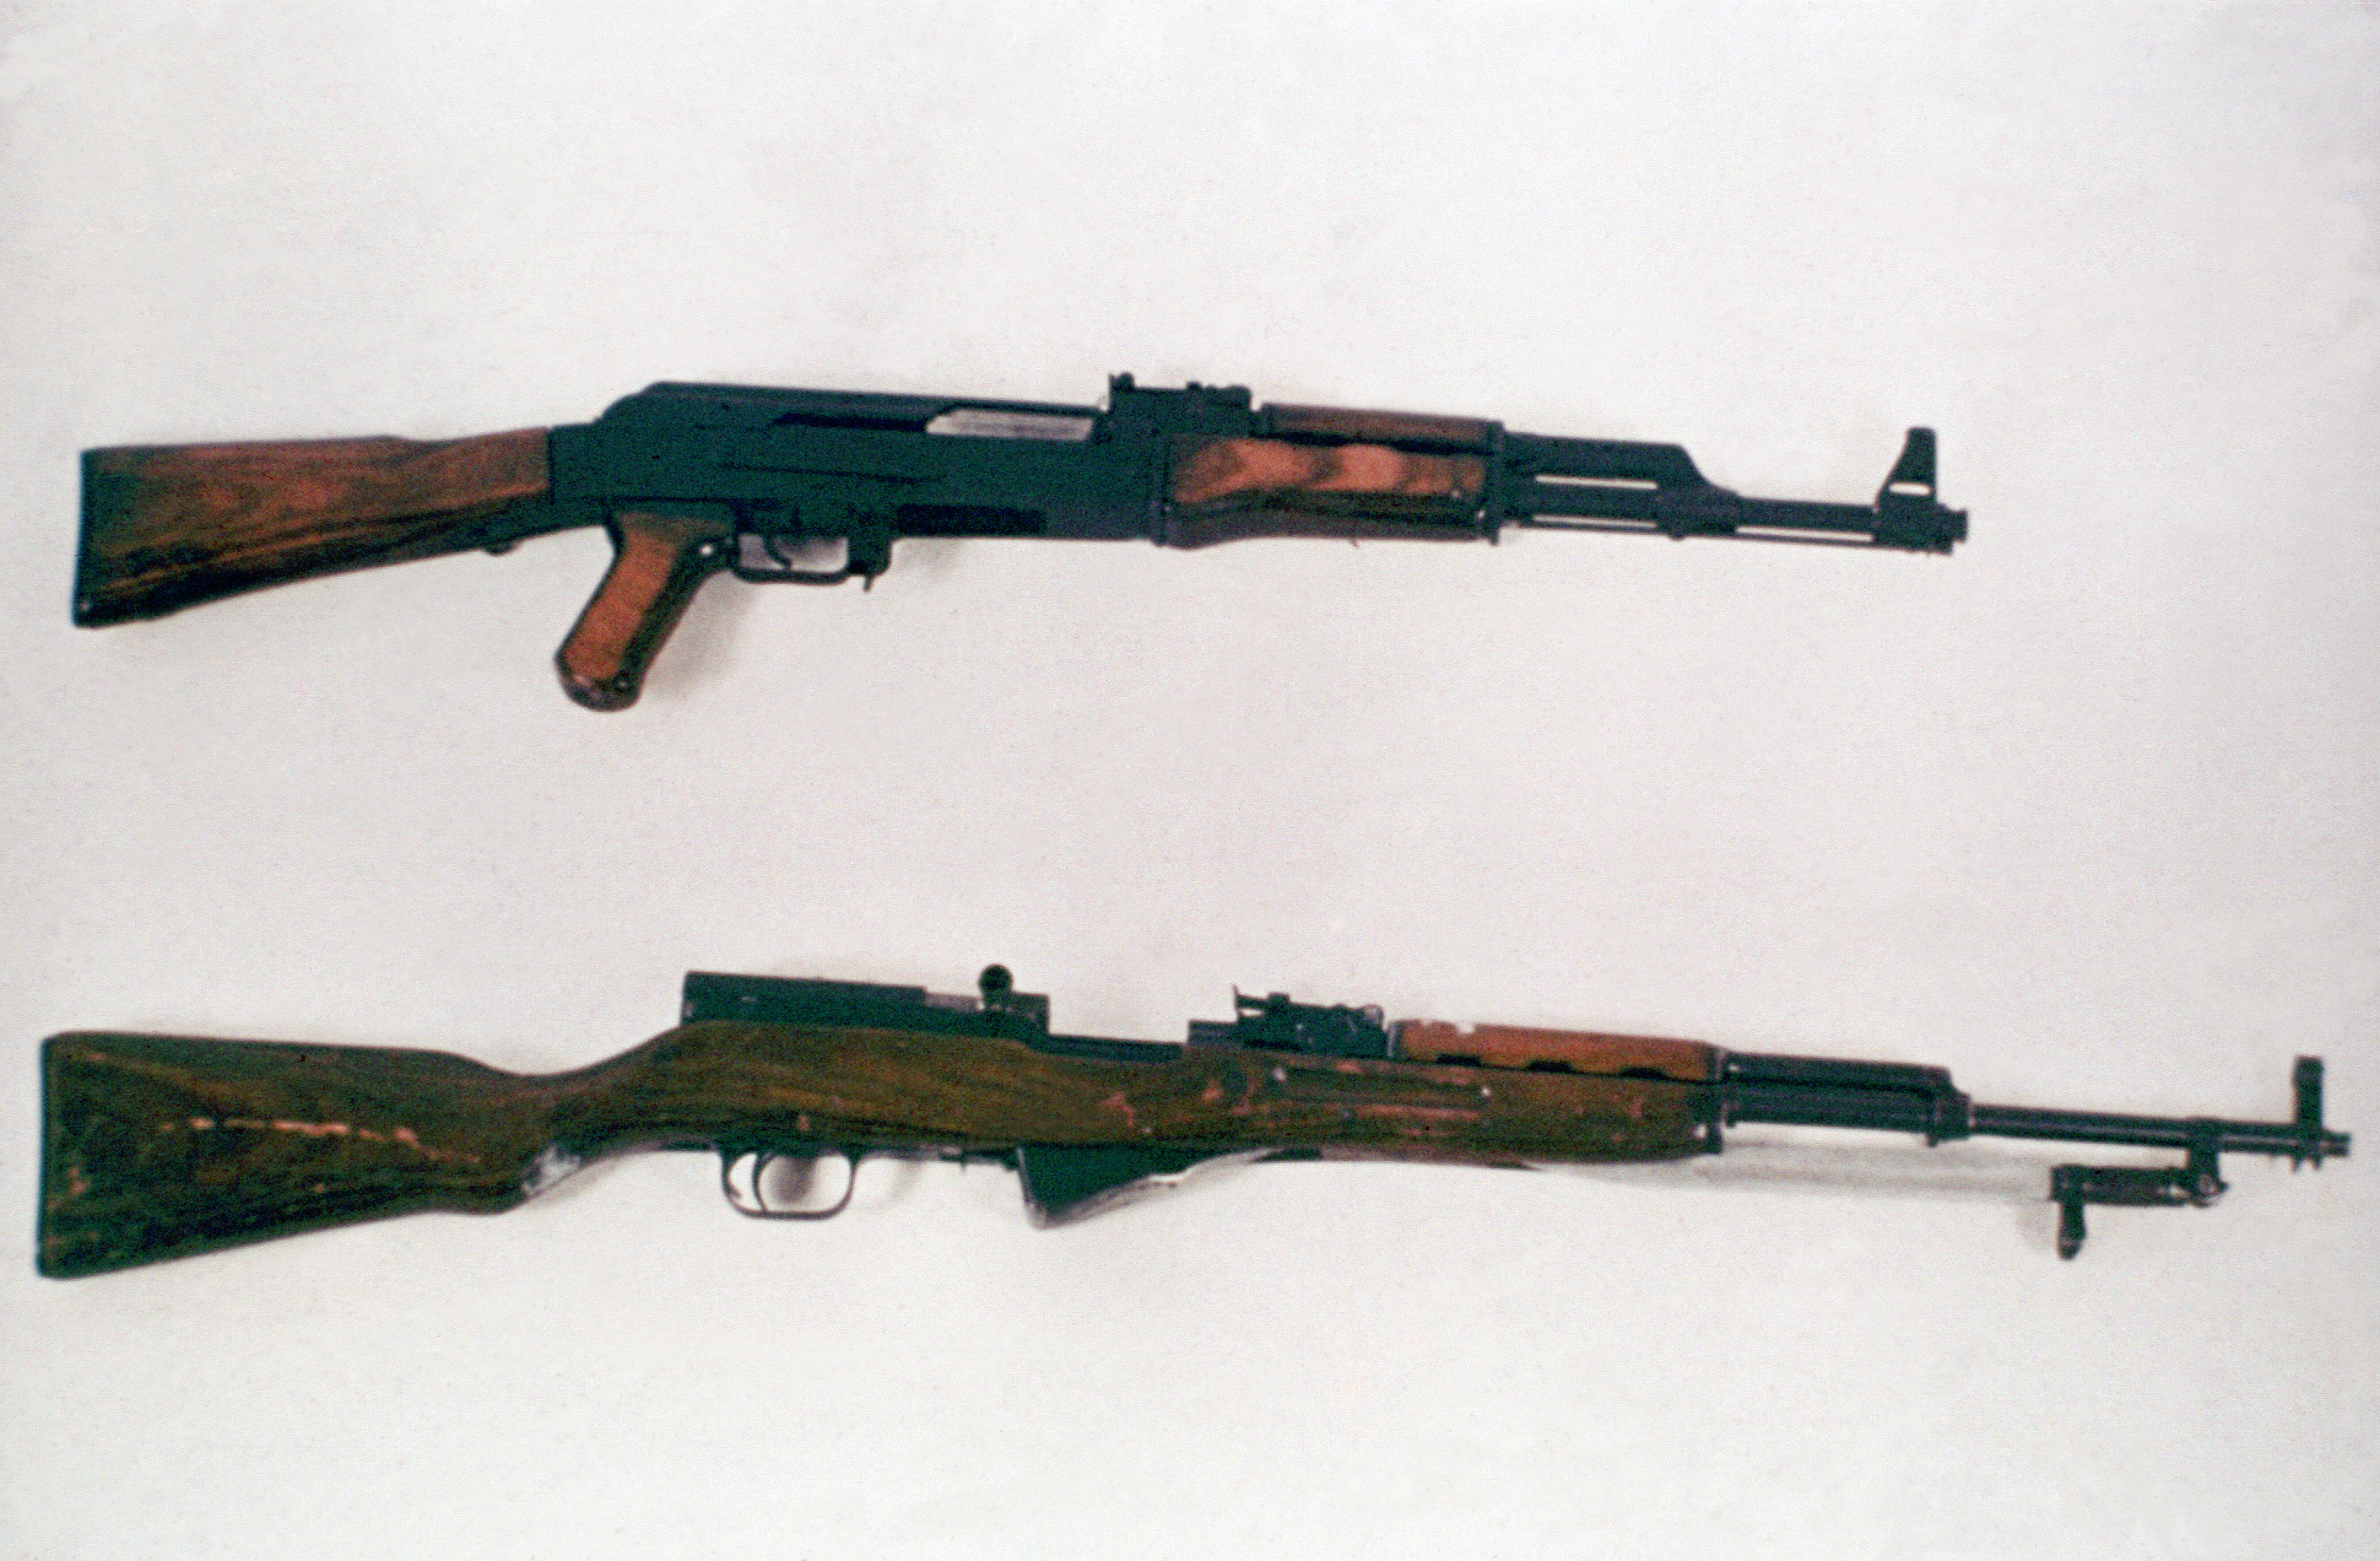 http://en.academic.ru/pictures/enwiki/65/AK-47_and_SKS_DD-ST-85-01268.jpg